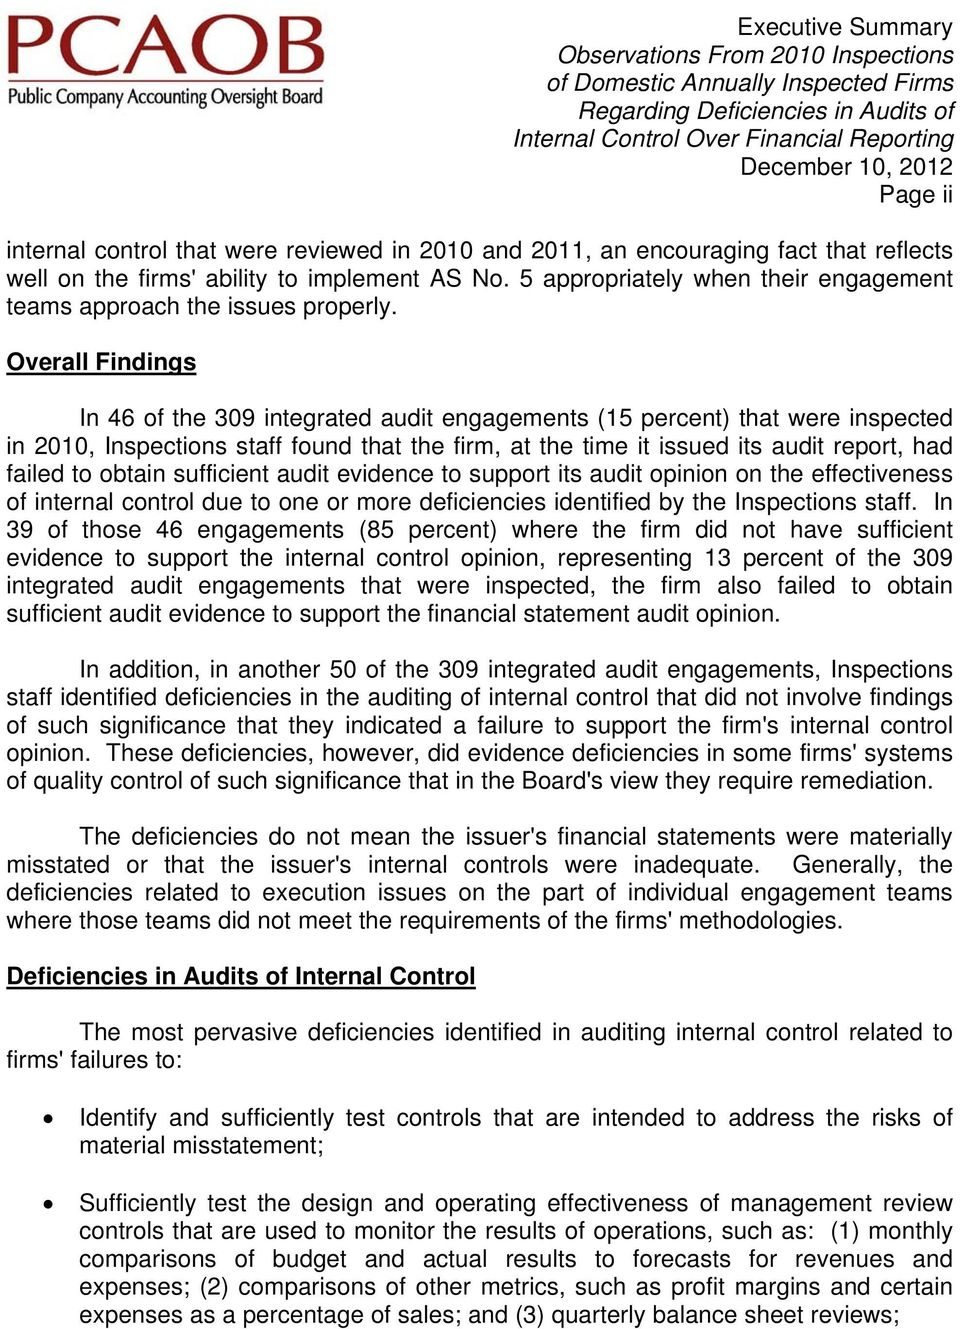 Overall Findings In 46 of the 309 integrated audit engagements (15 percent) that were inspected in 2010, Inspections staff found that the firm, at the time it issued its audit report, had failed to